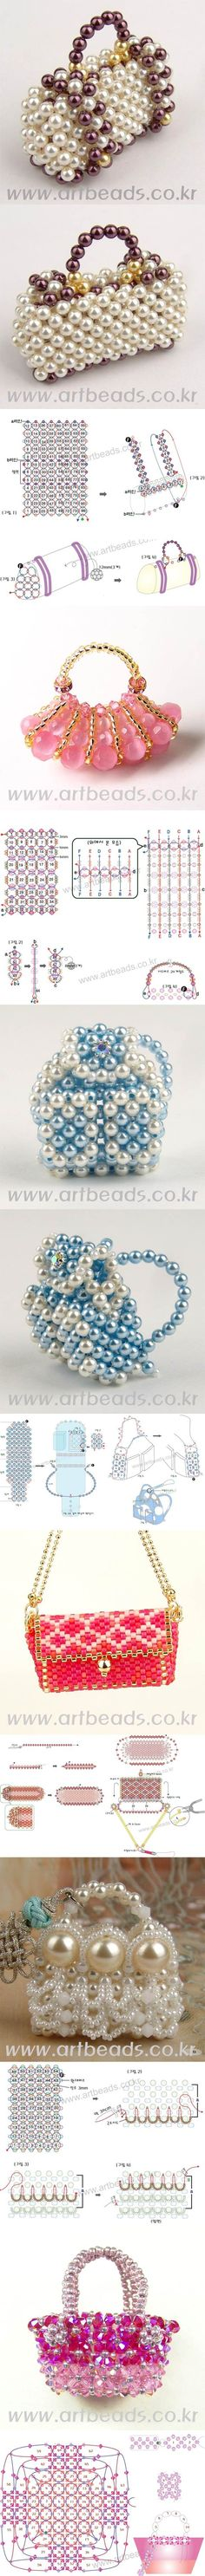 DIY Cute Miniature Beaded Handbags great for pendant Beaded Beads, Beaded Ornaments, Beads And Wire, Beaded Jewelry, Jewellery, Beading Projects, Beading Tutorials, Jewelry Patterns, Beading Patterns